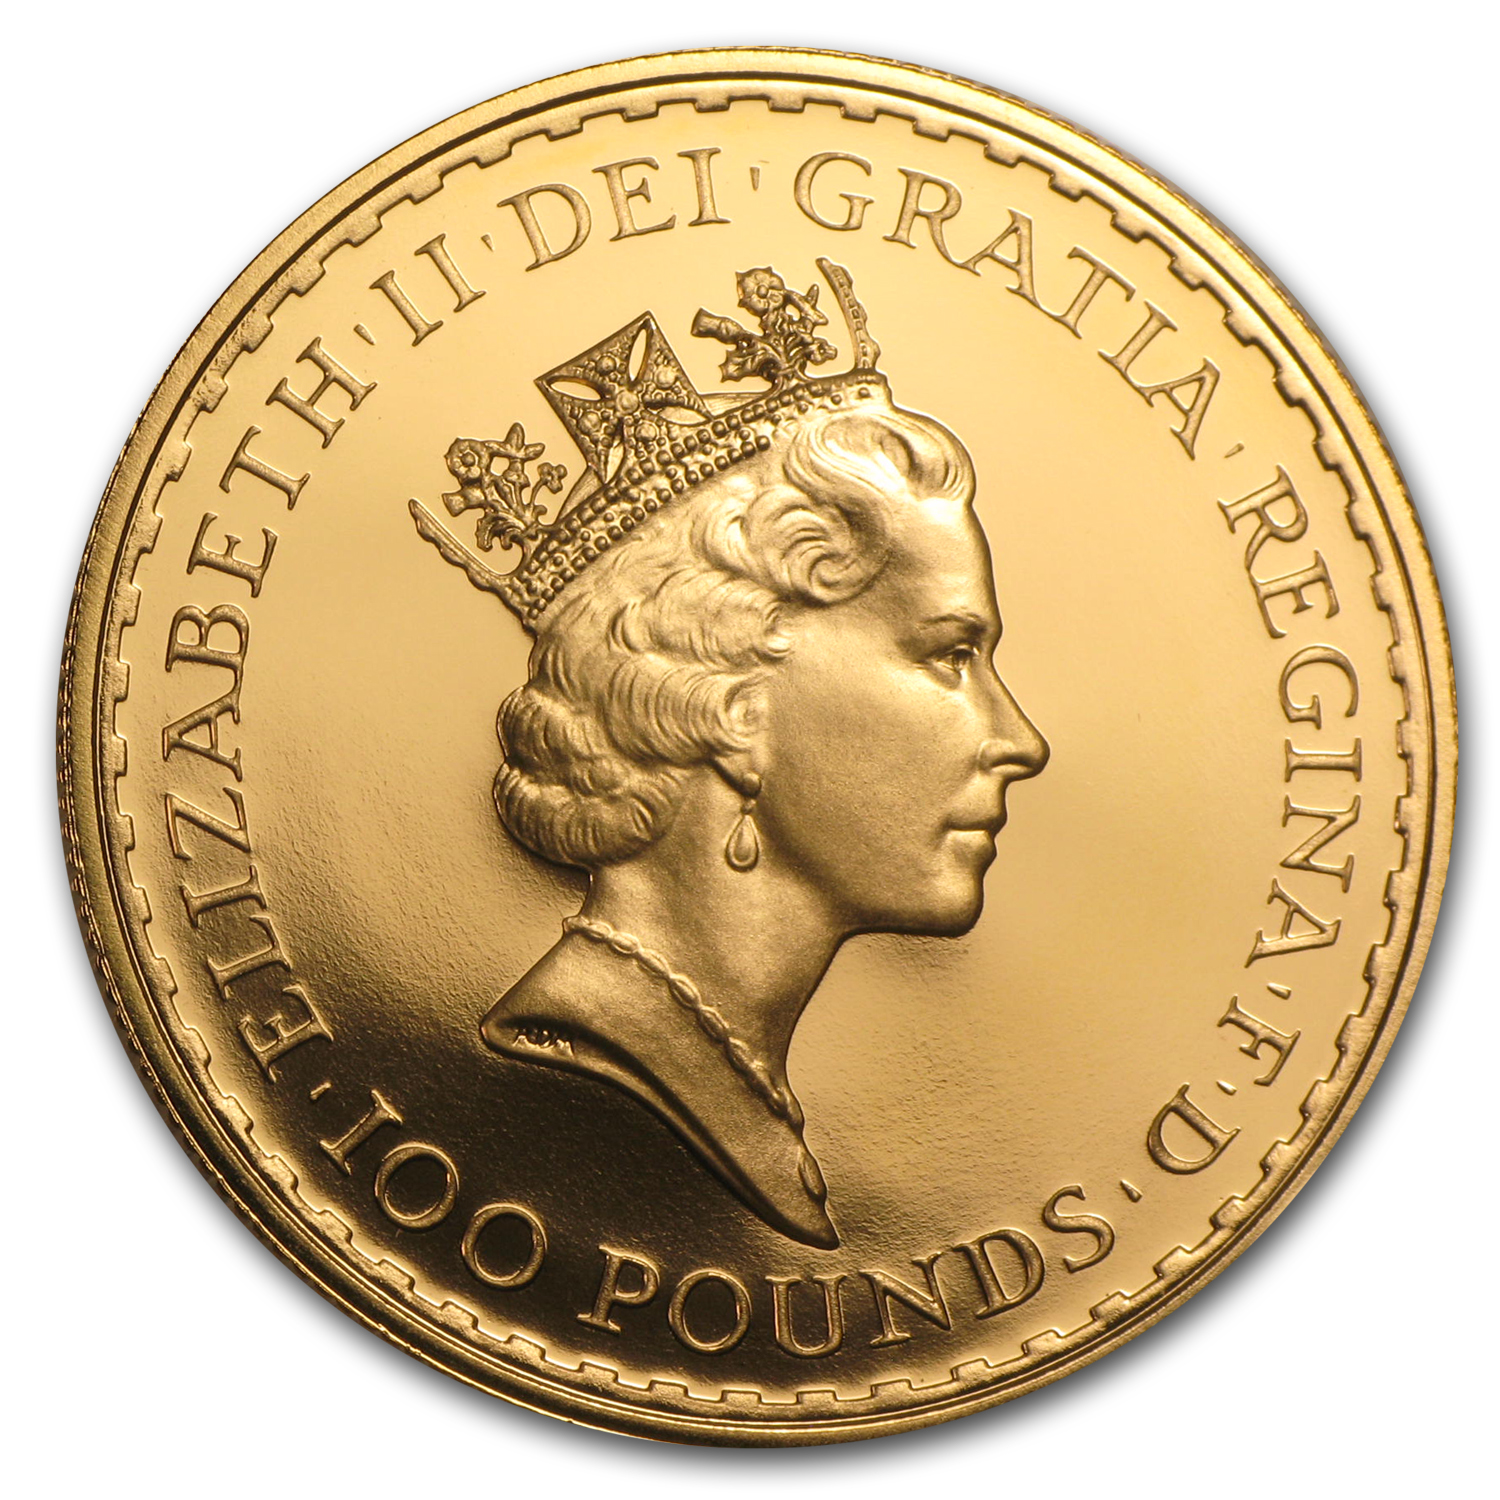 1989 1 oz Proof Gold Britannia